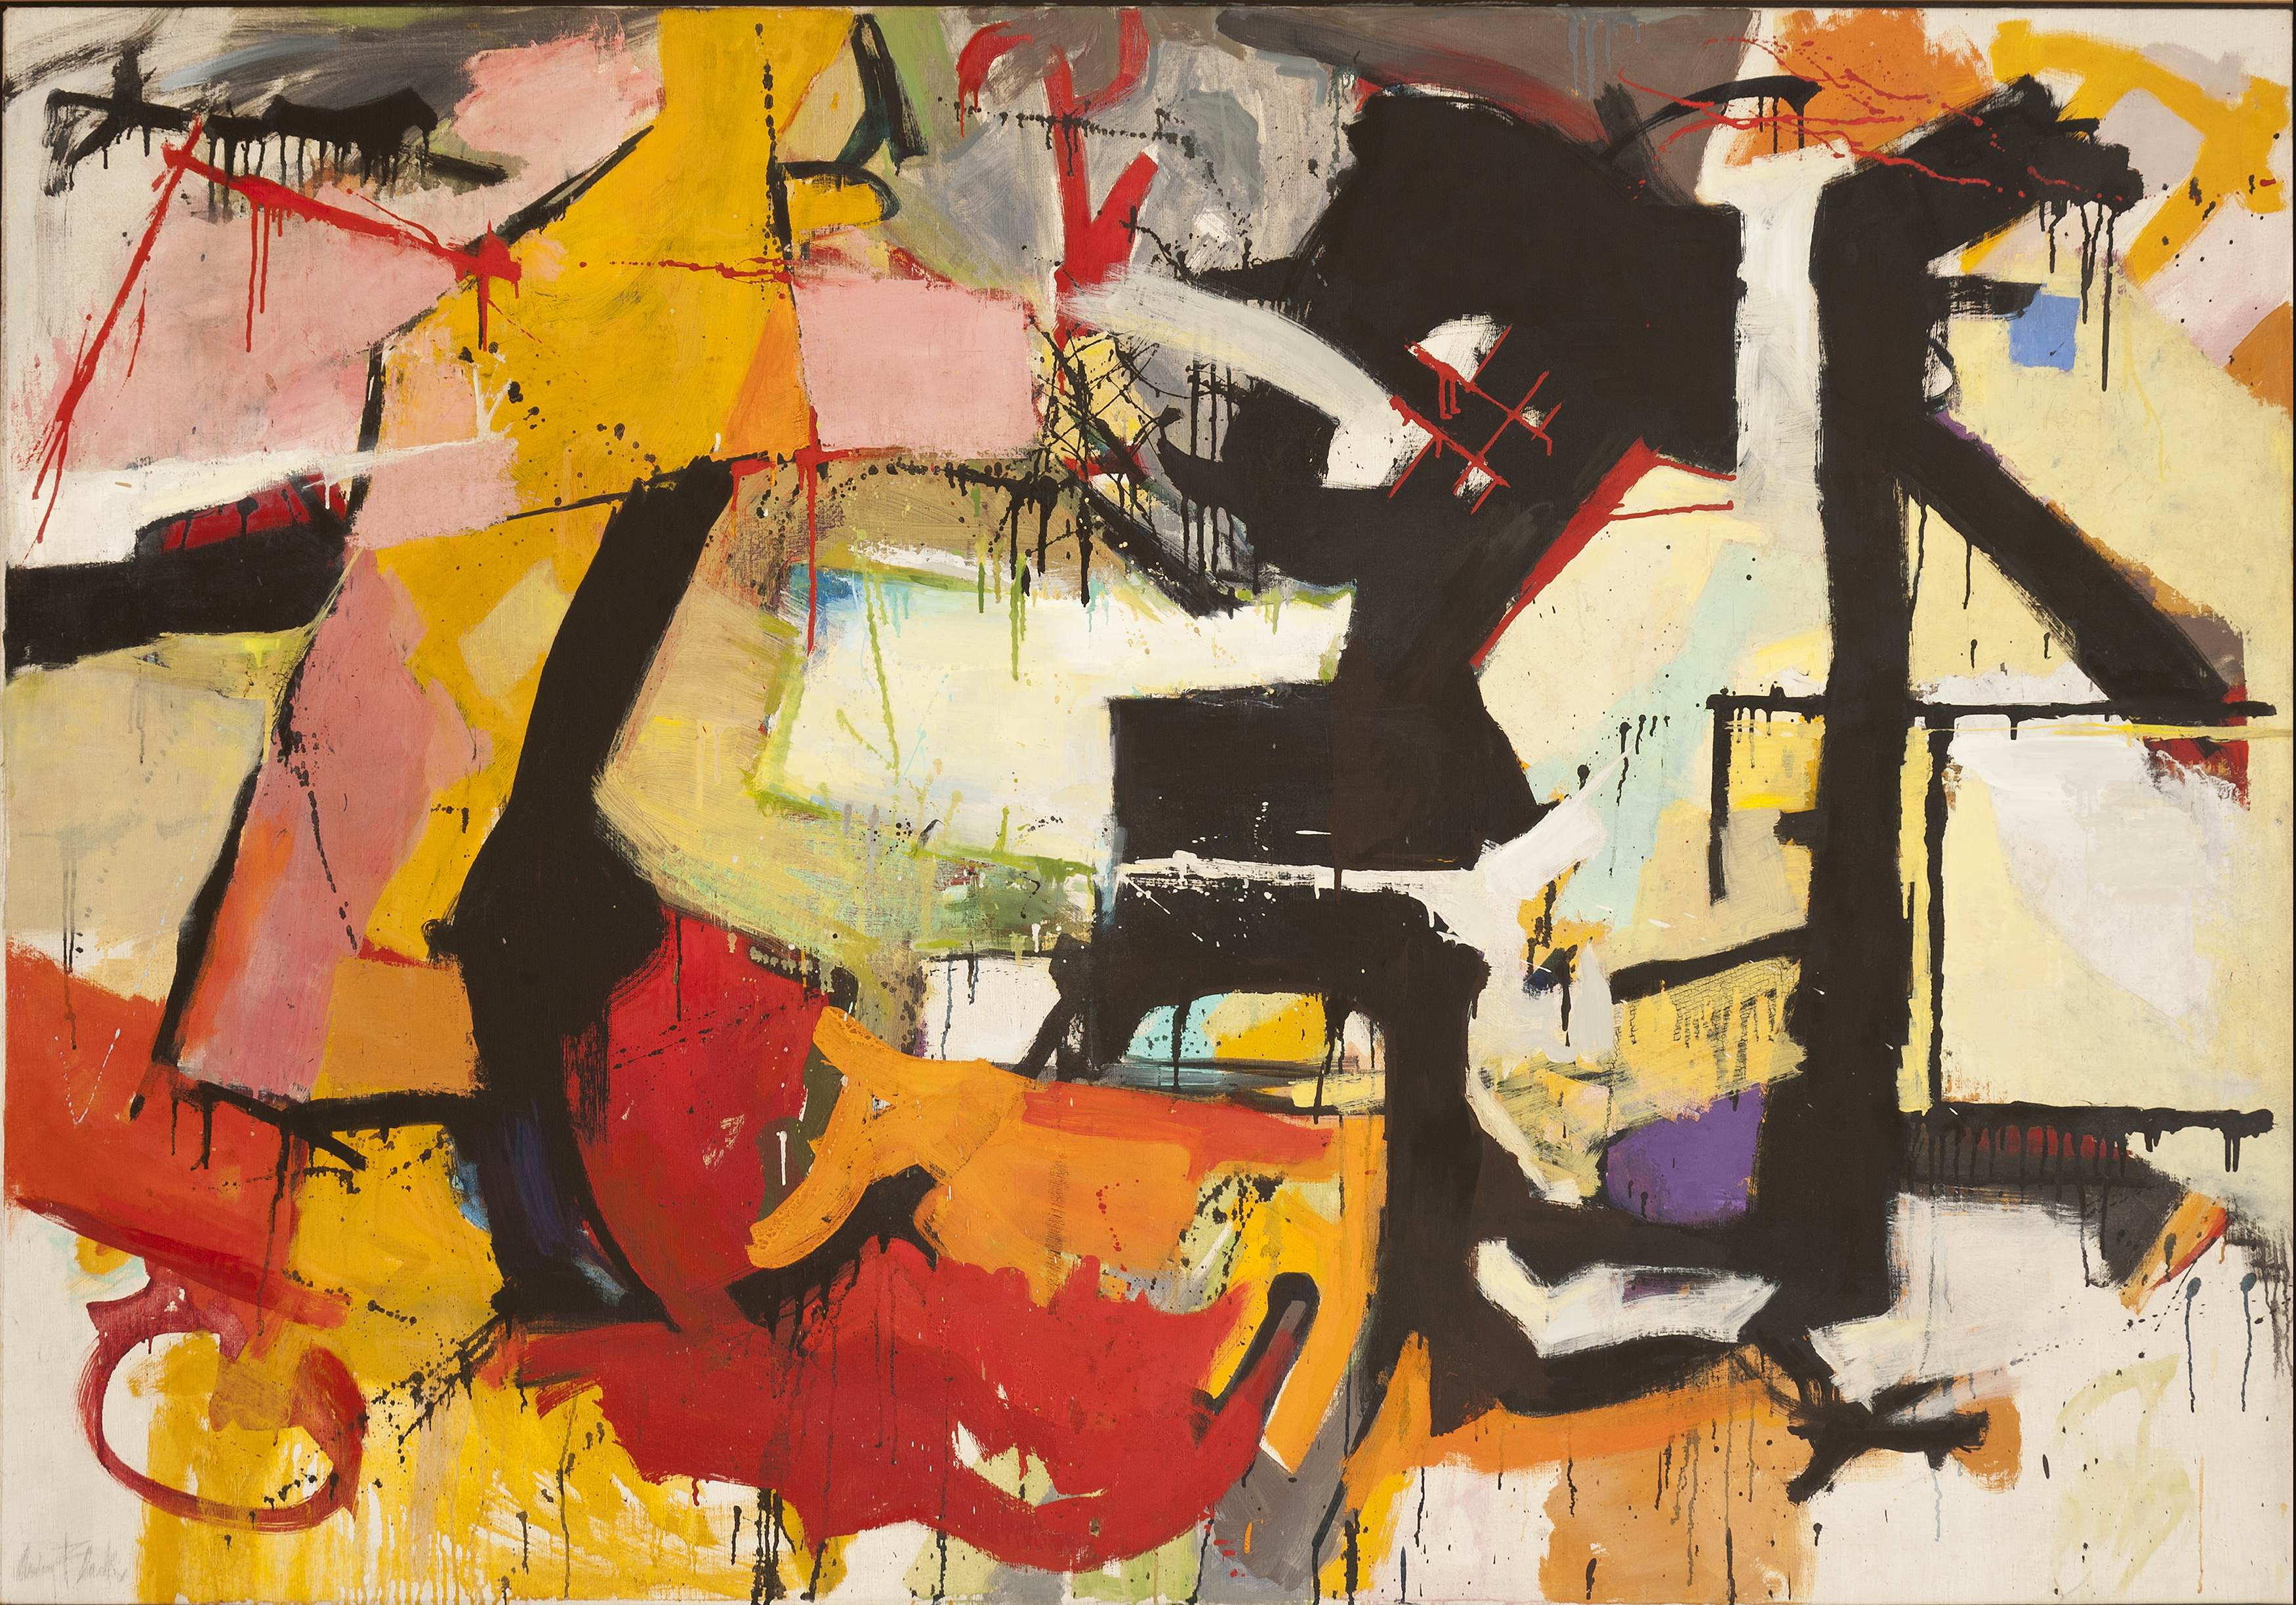 Hollis Taggart Galleries Presents Abstract Expressionist Paintings ...